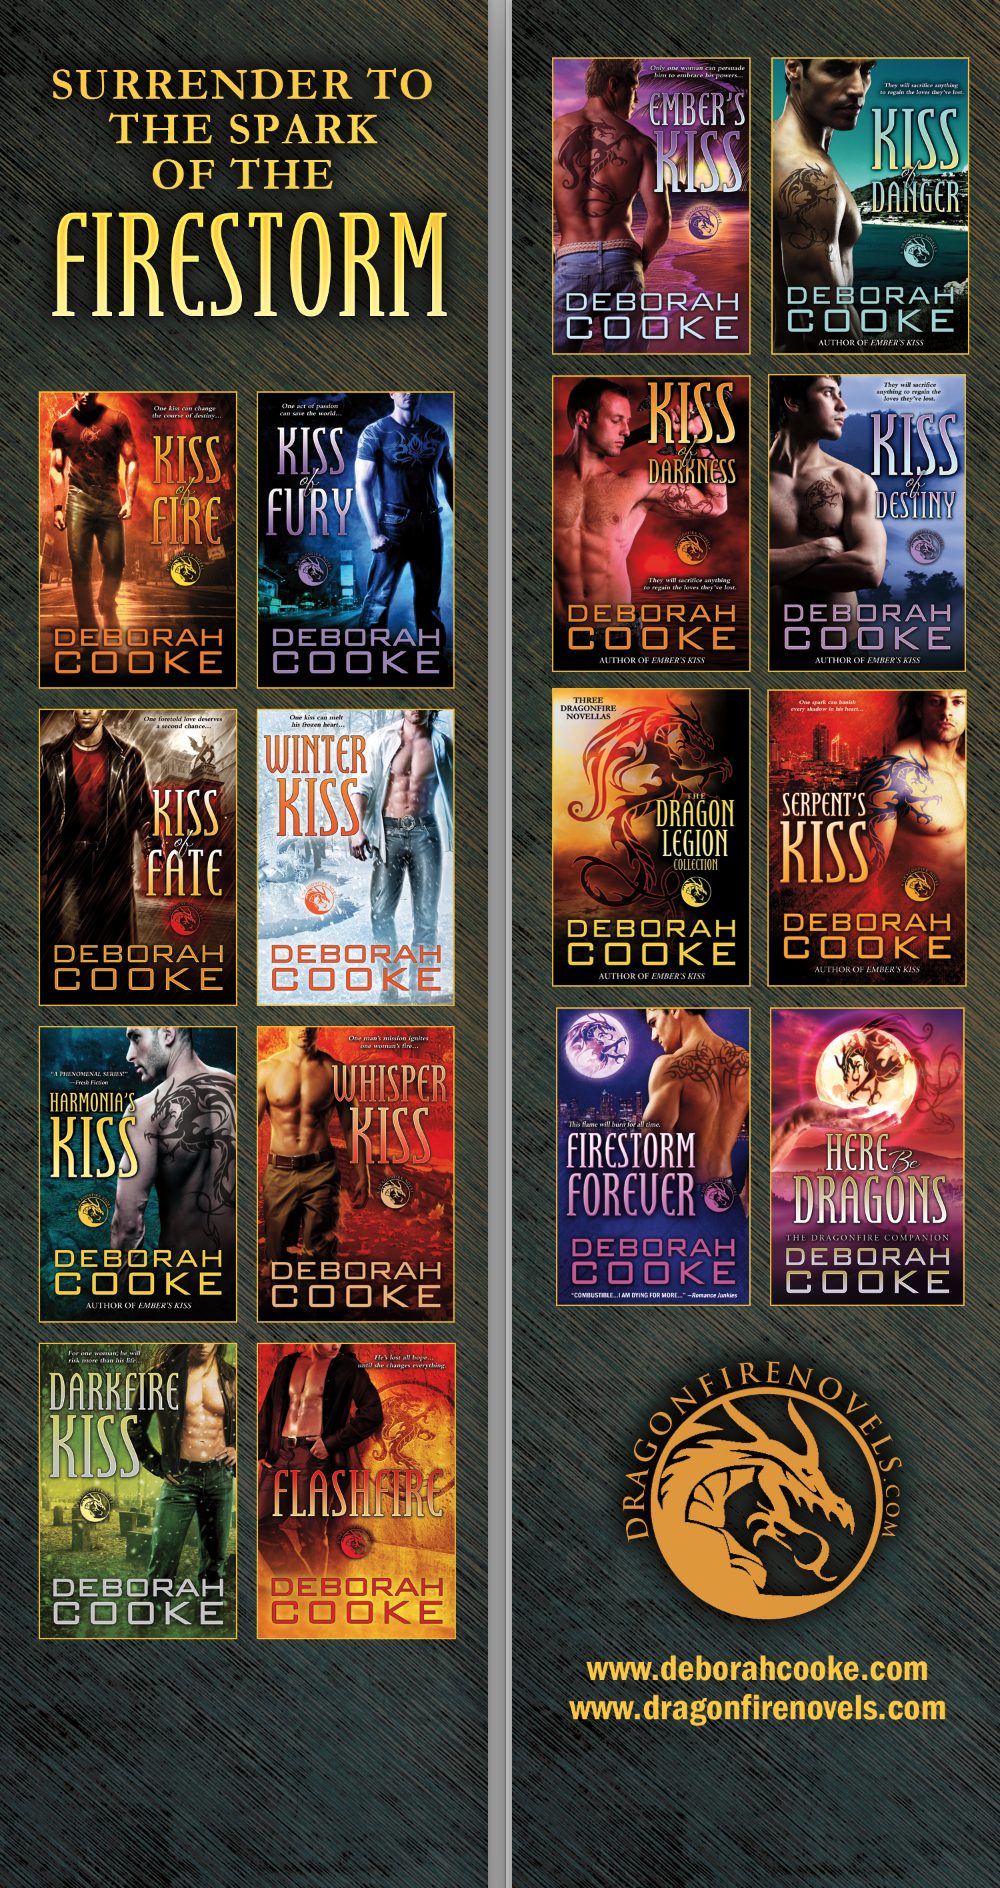 Bookmark design for the Dragonfire series of paranormal romances by Deborah Cooke